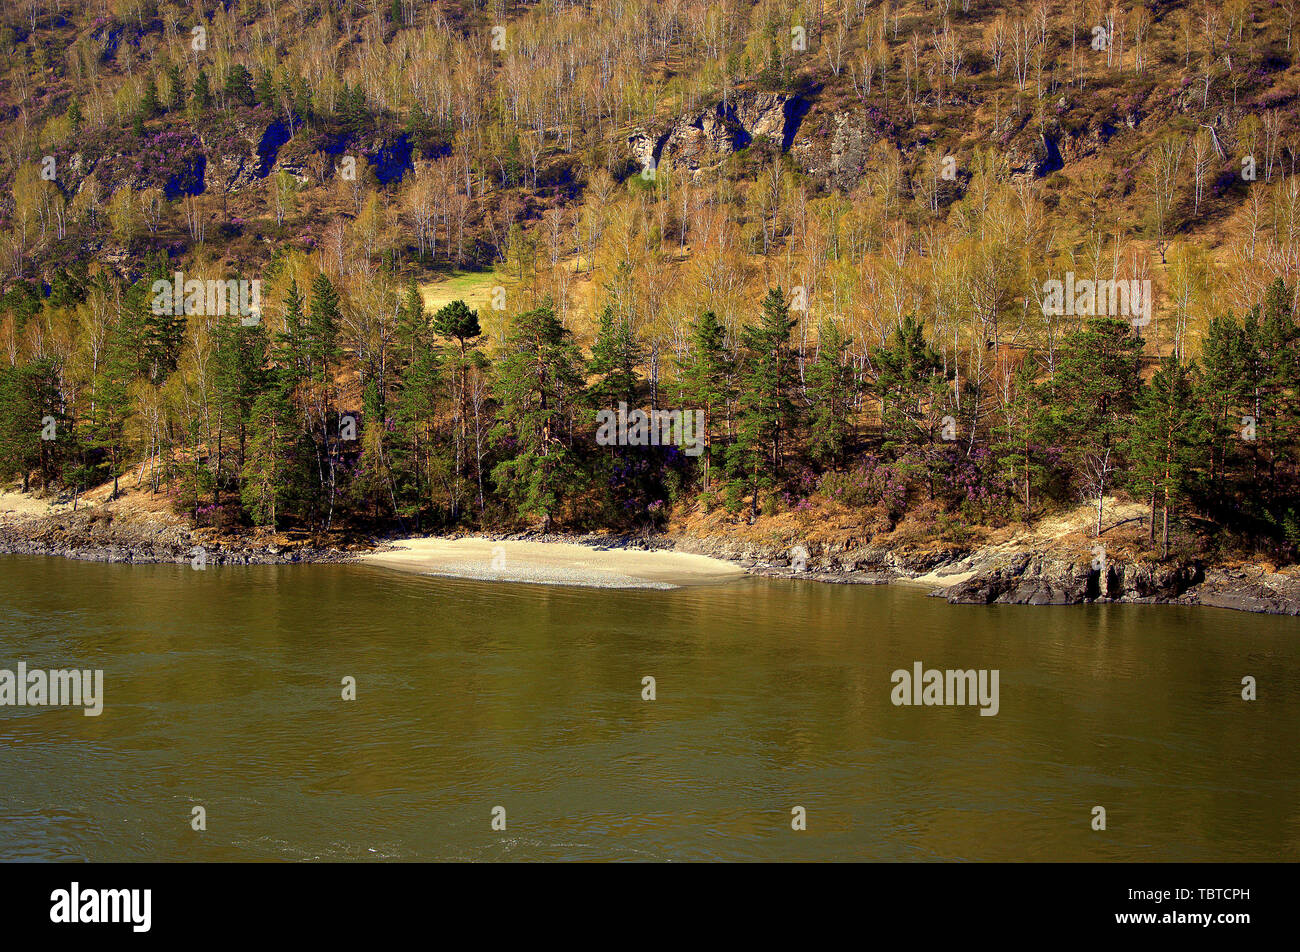 Stony shore with a sandy beach of the Katun mountain river, covered with coniferous forest. Altai, Siberia, Russia. - Stock Image